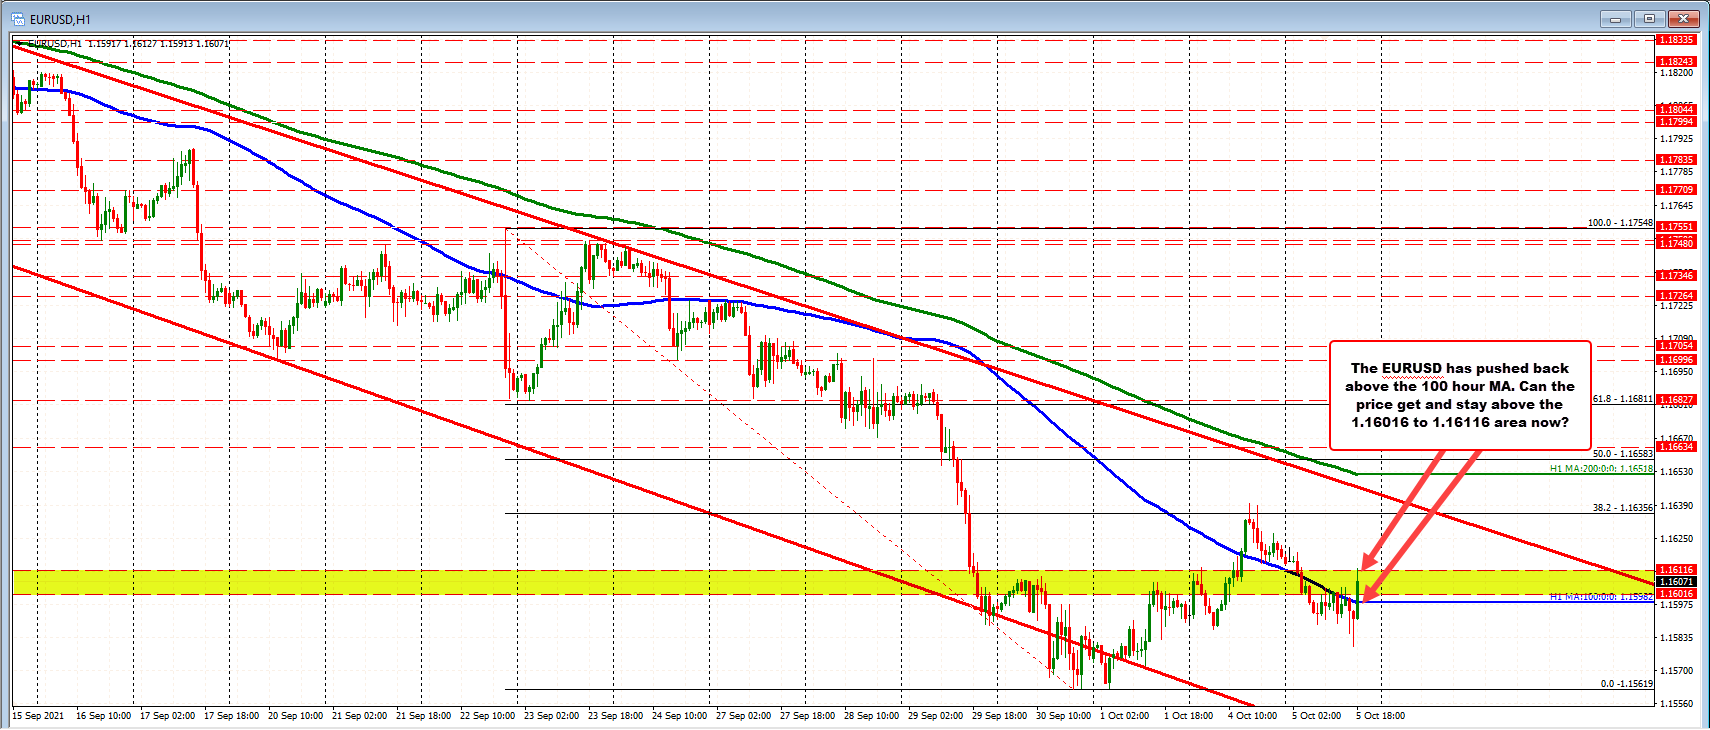 EURUSD moves back above the 100 hour MA. Now what?